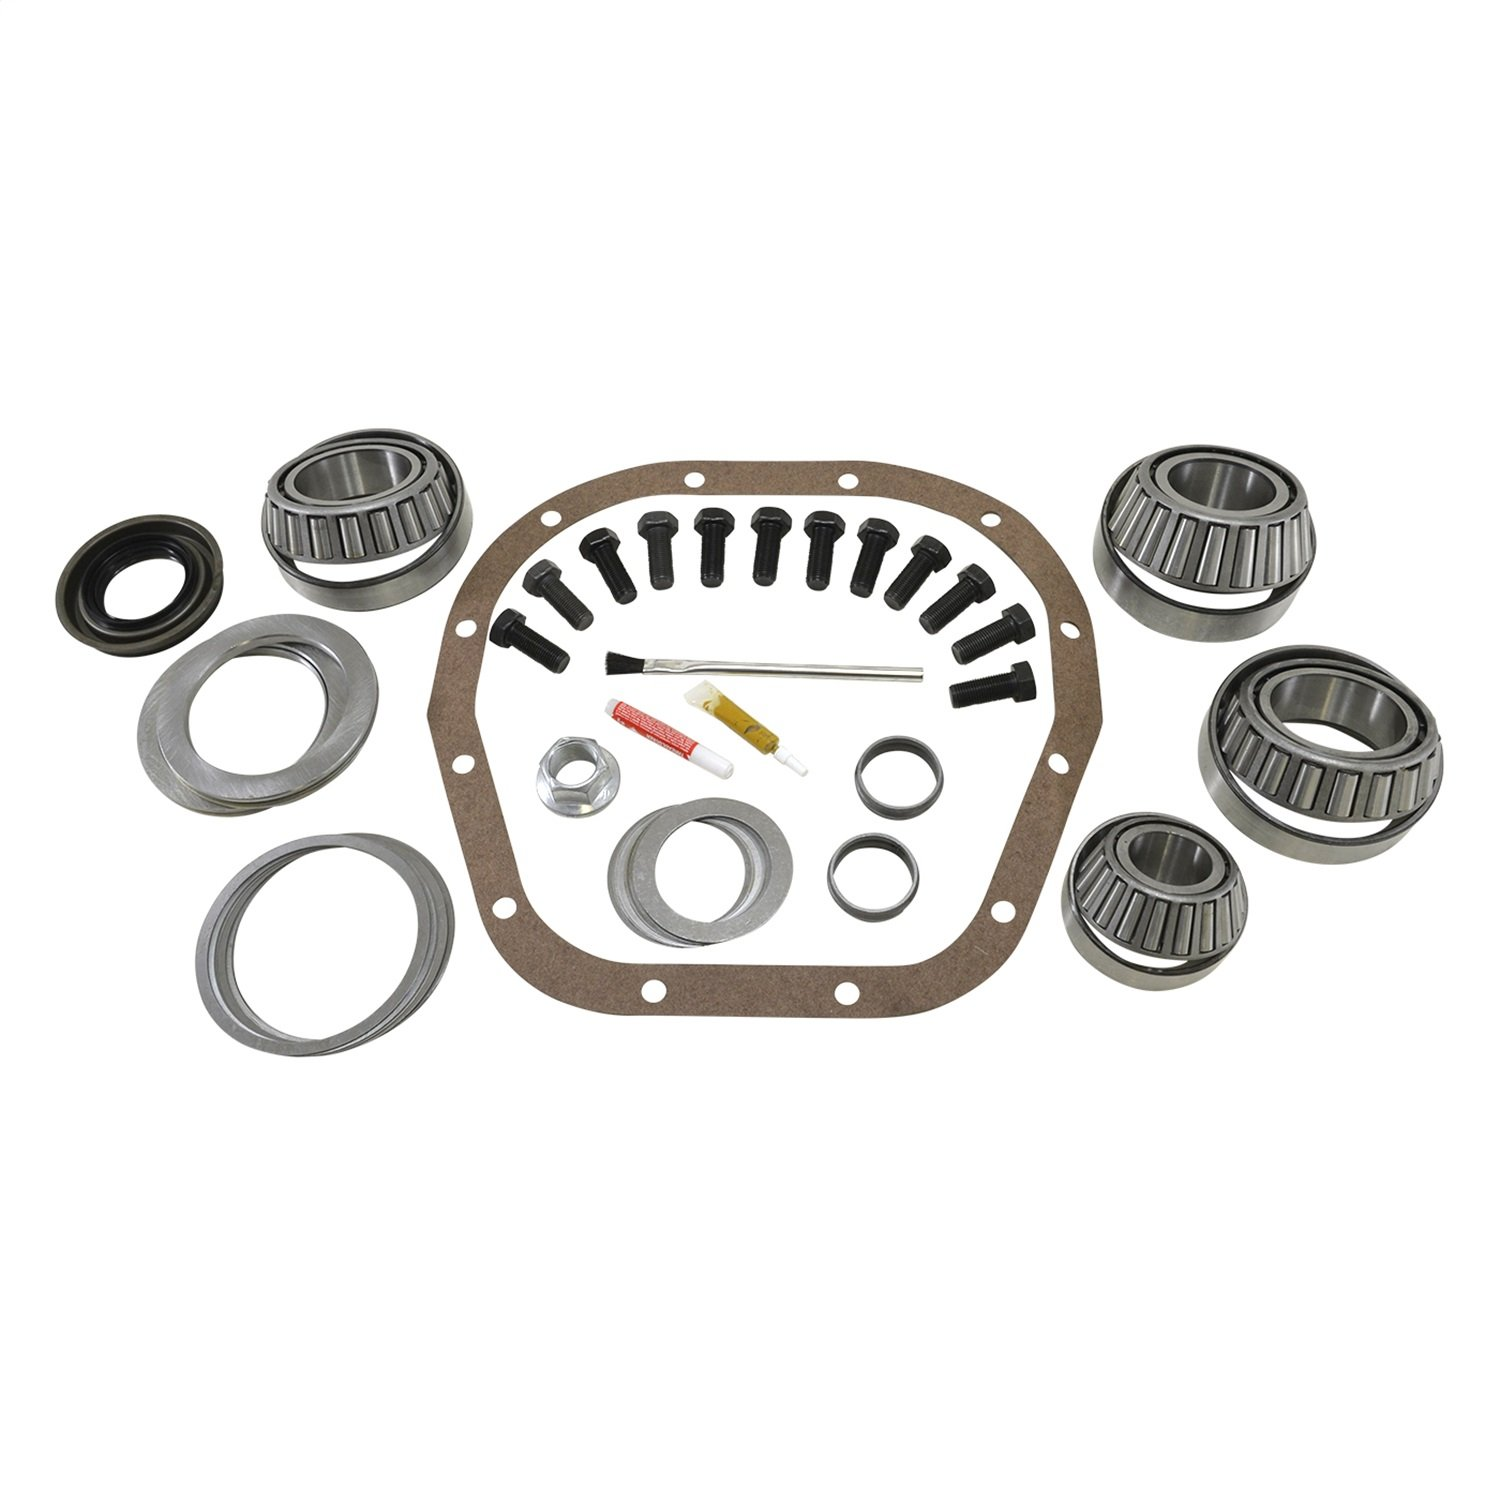 USA Standard Gear (ZK F10.25) Master Overhaul Kit for Ford 10.25 Differential